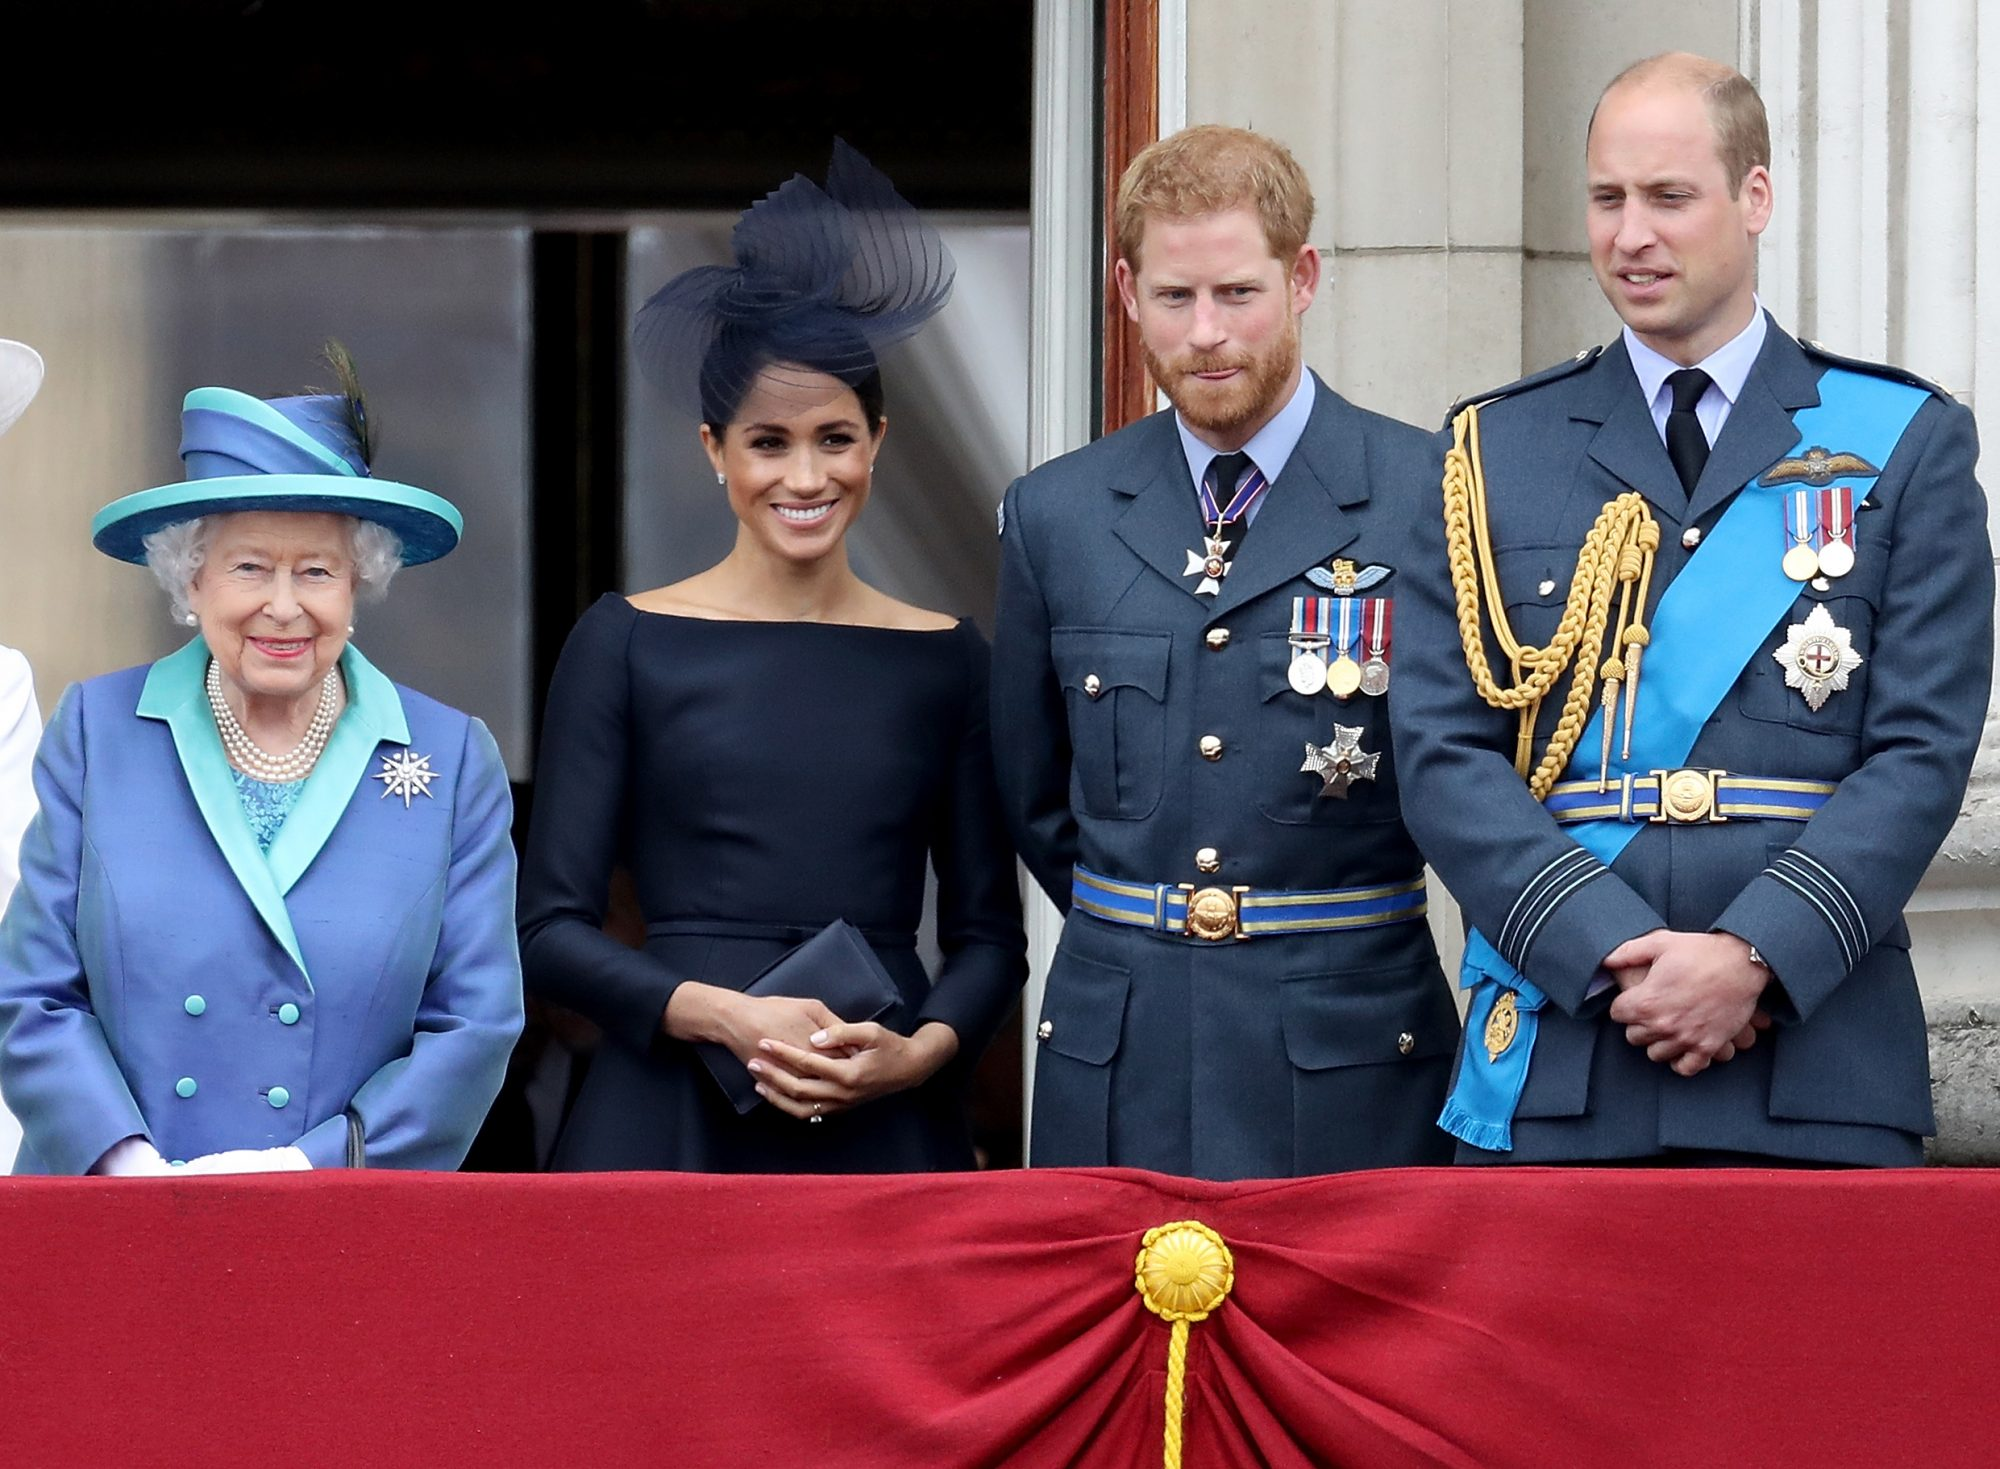 Queen Elizabeth II, Meghan Markle, Prince Harry y Prince William Members Of The Royal Family Attend Events To Mark The Centenary Of The RAF